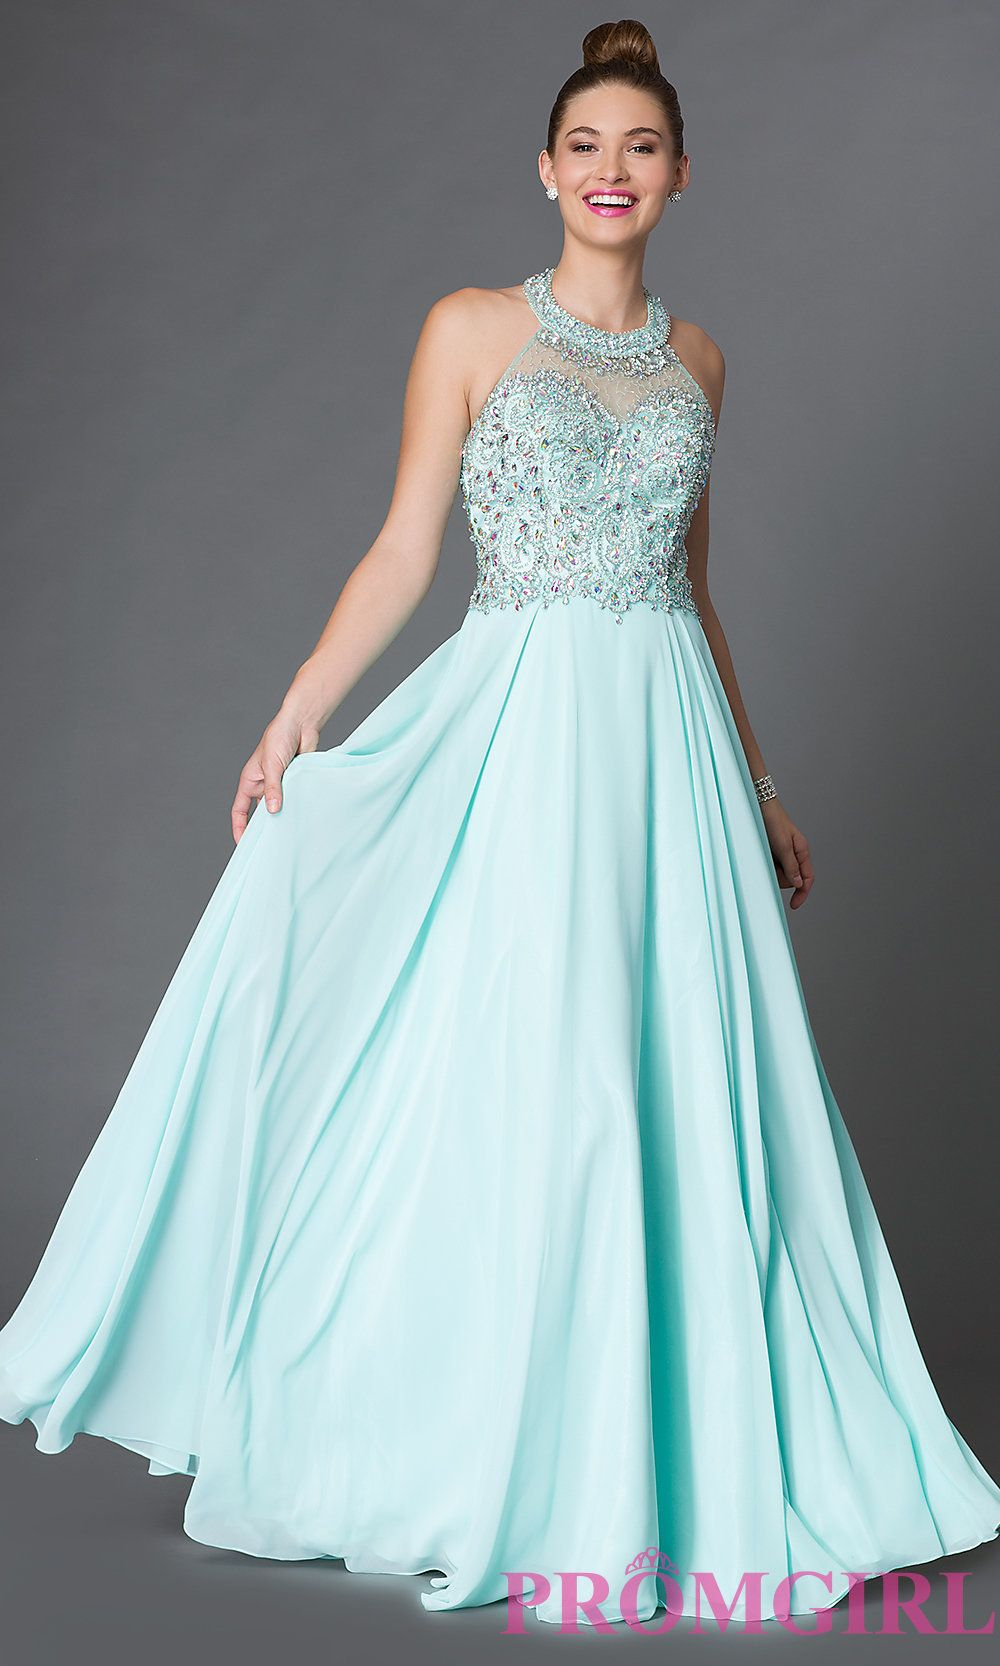 Long Halter Open Back Prom Dress with Jewel Embellished Bodice DQ ...